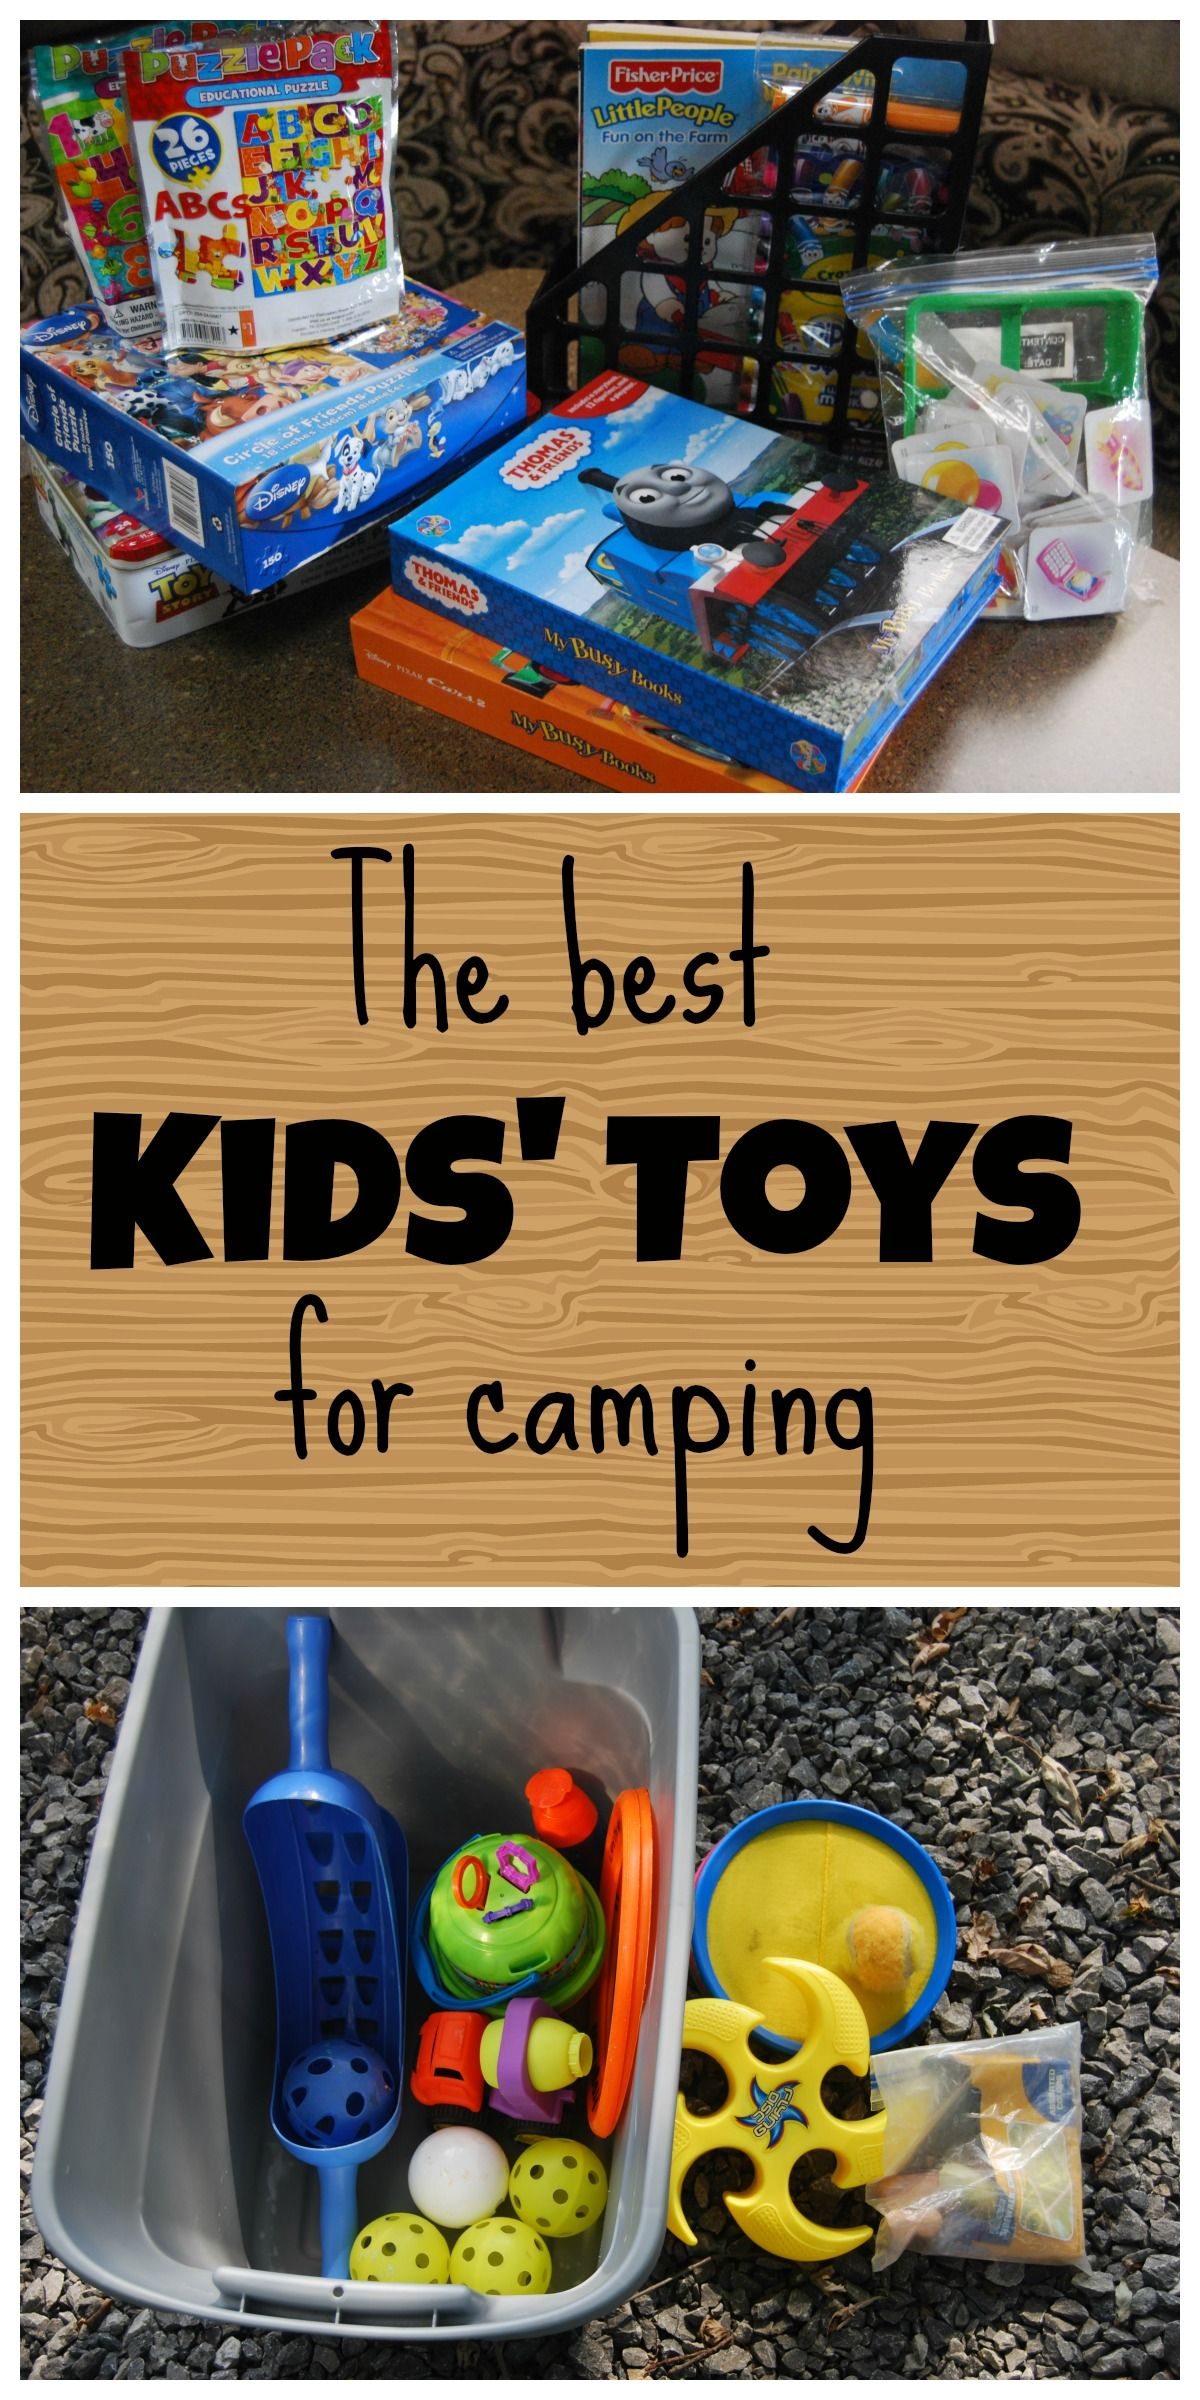 Kiddo Cubbie Share Camping Ideas Camping With Toddlers